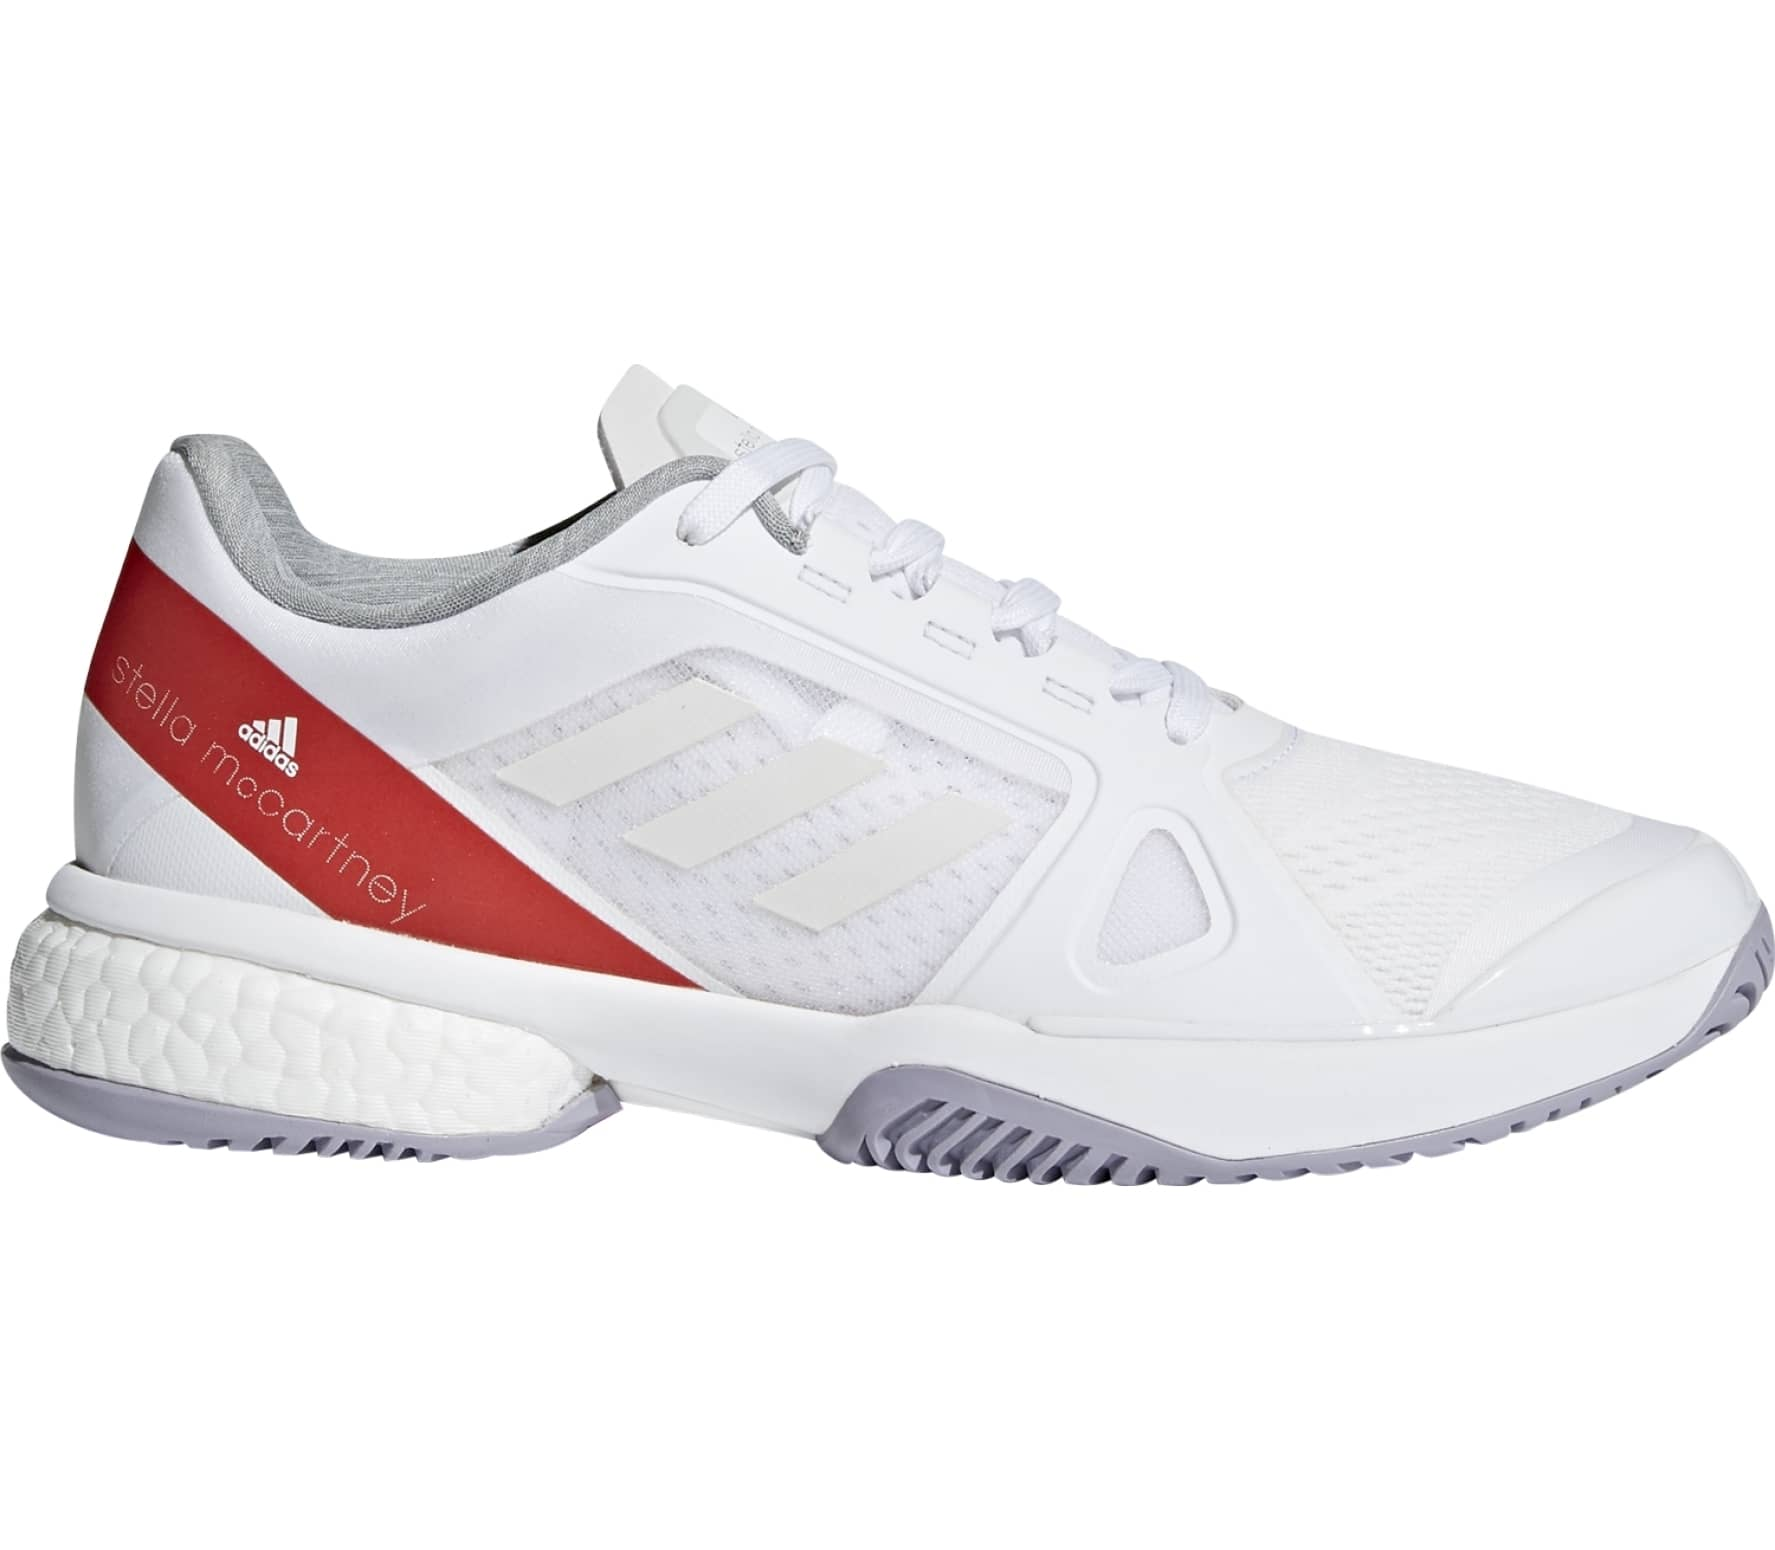 Adidas aSMC Barricade Boost Women's Shoes White